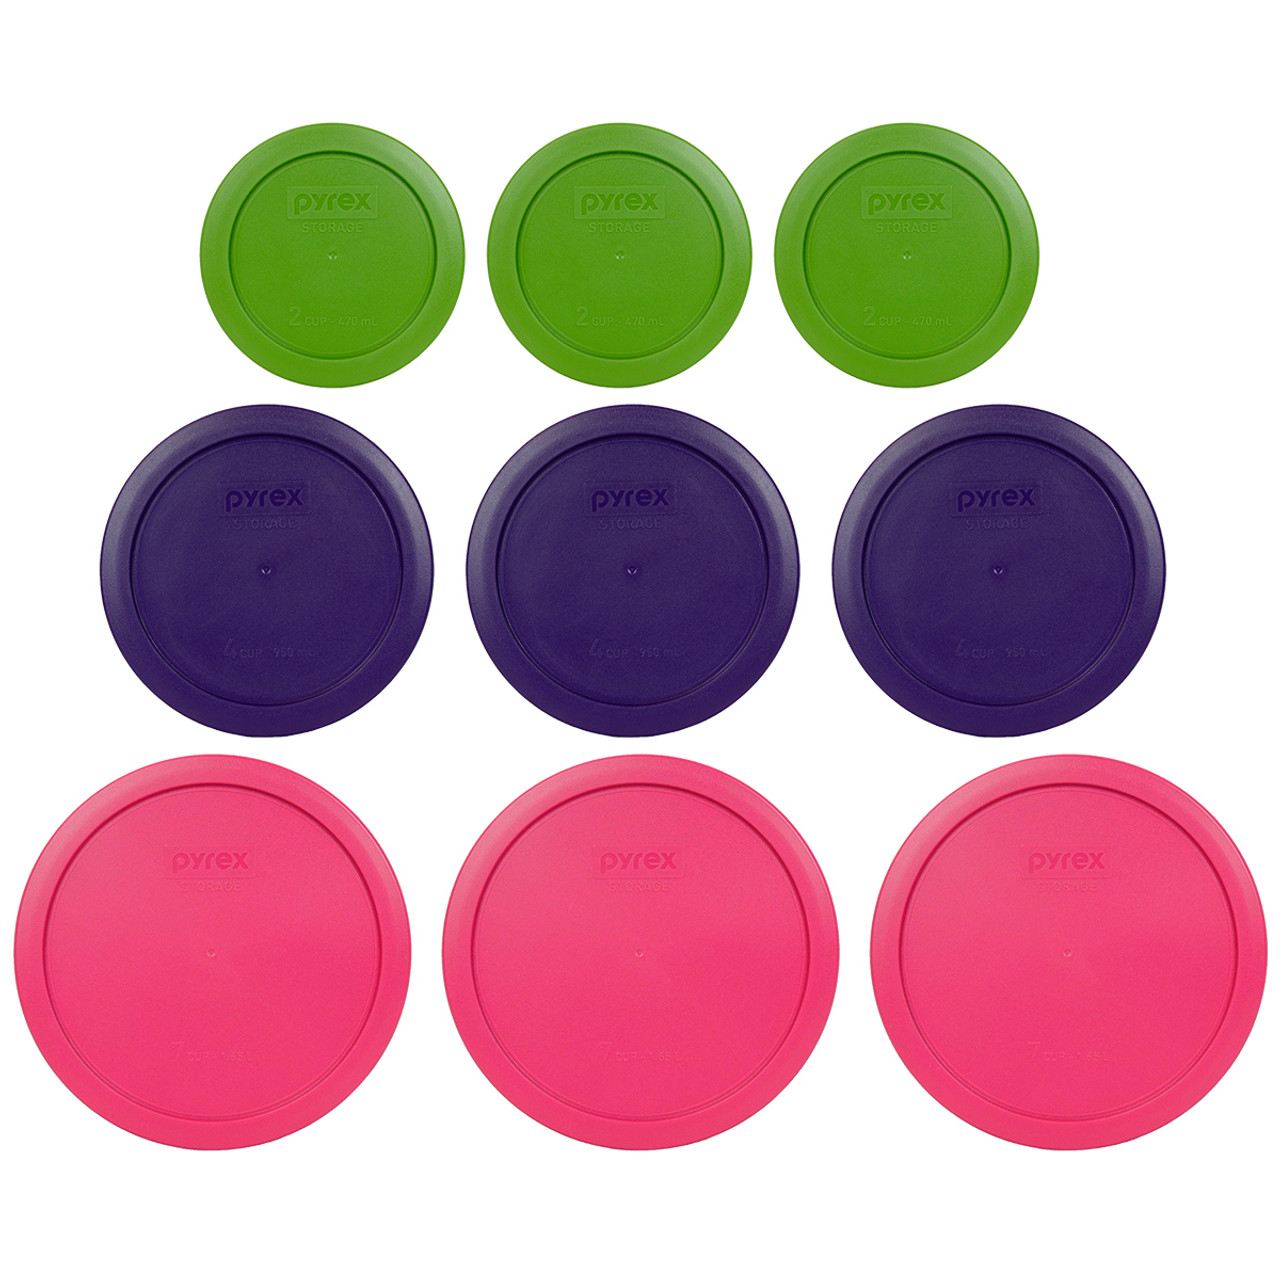 Pyrex Replacement Lids 7201-PC Surf Blue 7200-PC Red 3 7402-PC Fuchsia 3 3